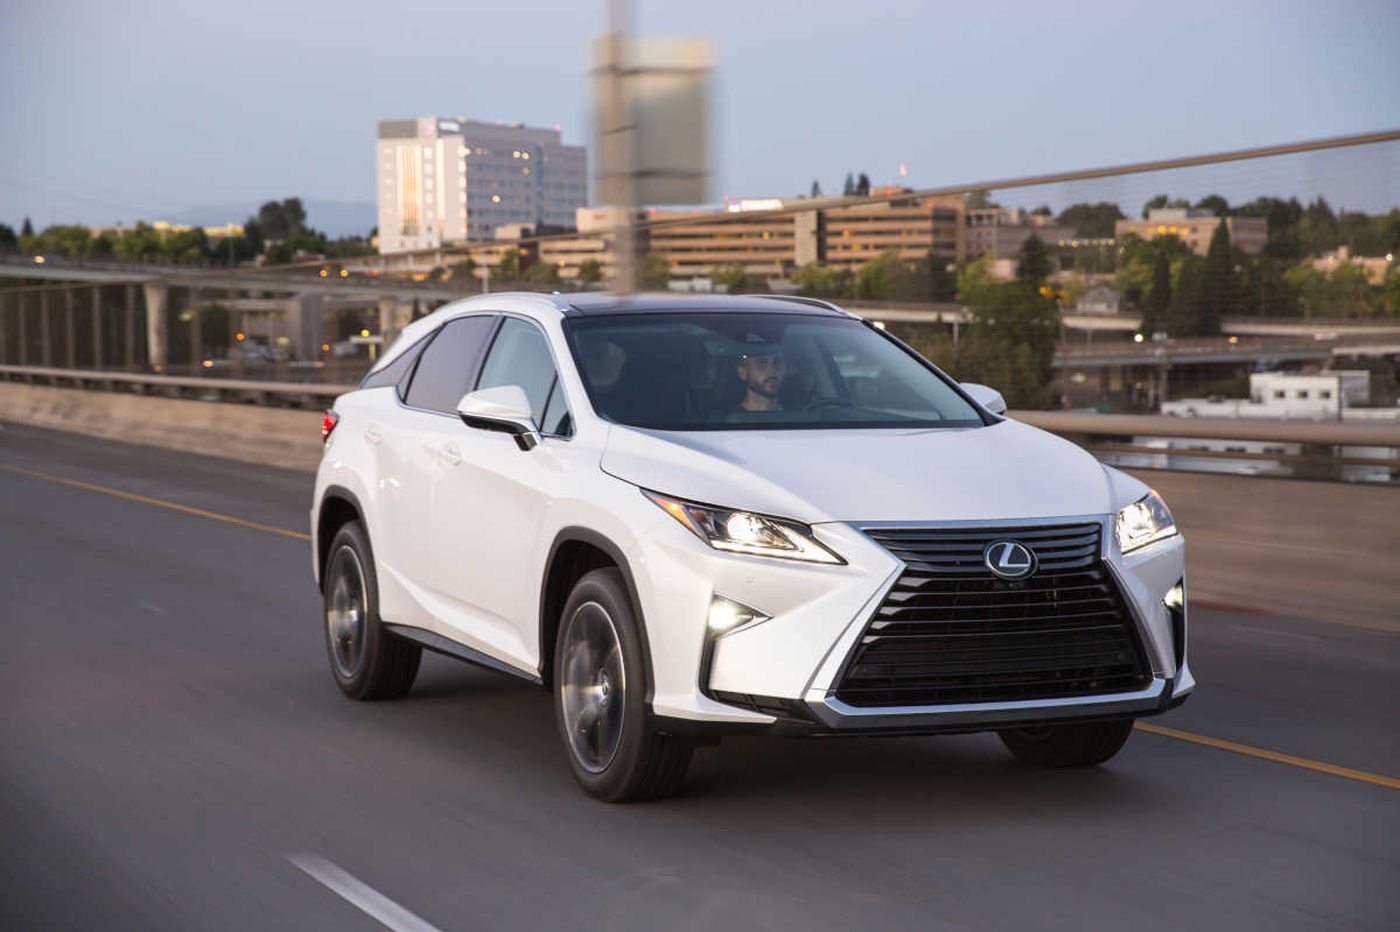 With Lexus RX350, the beauty comes from within